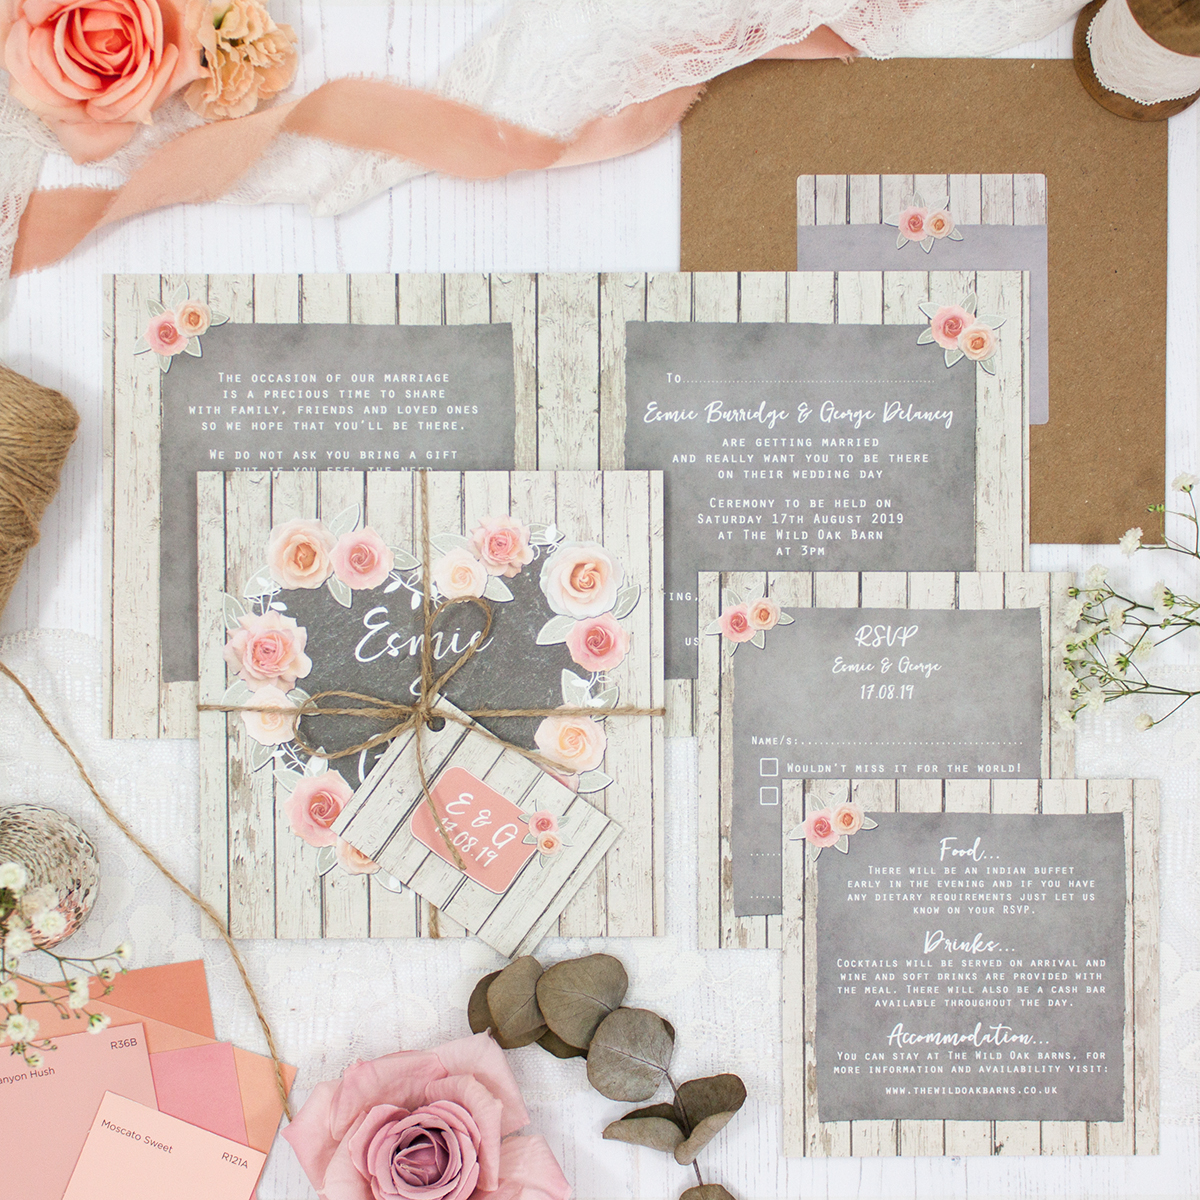 Rose Cottage Wedding showing invitation